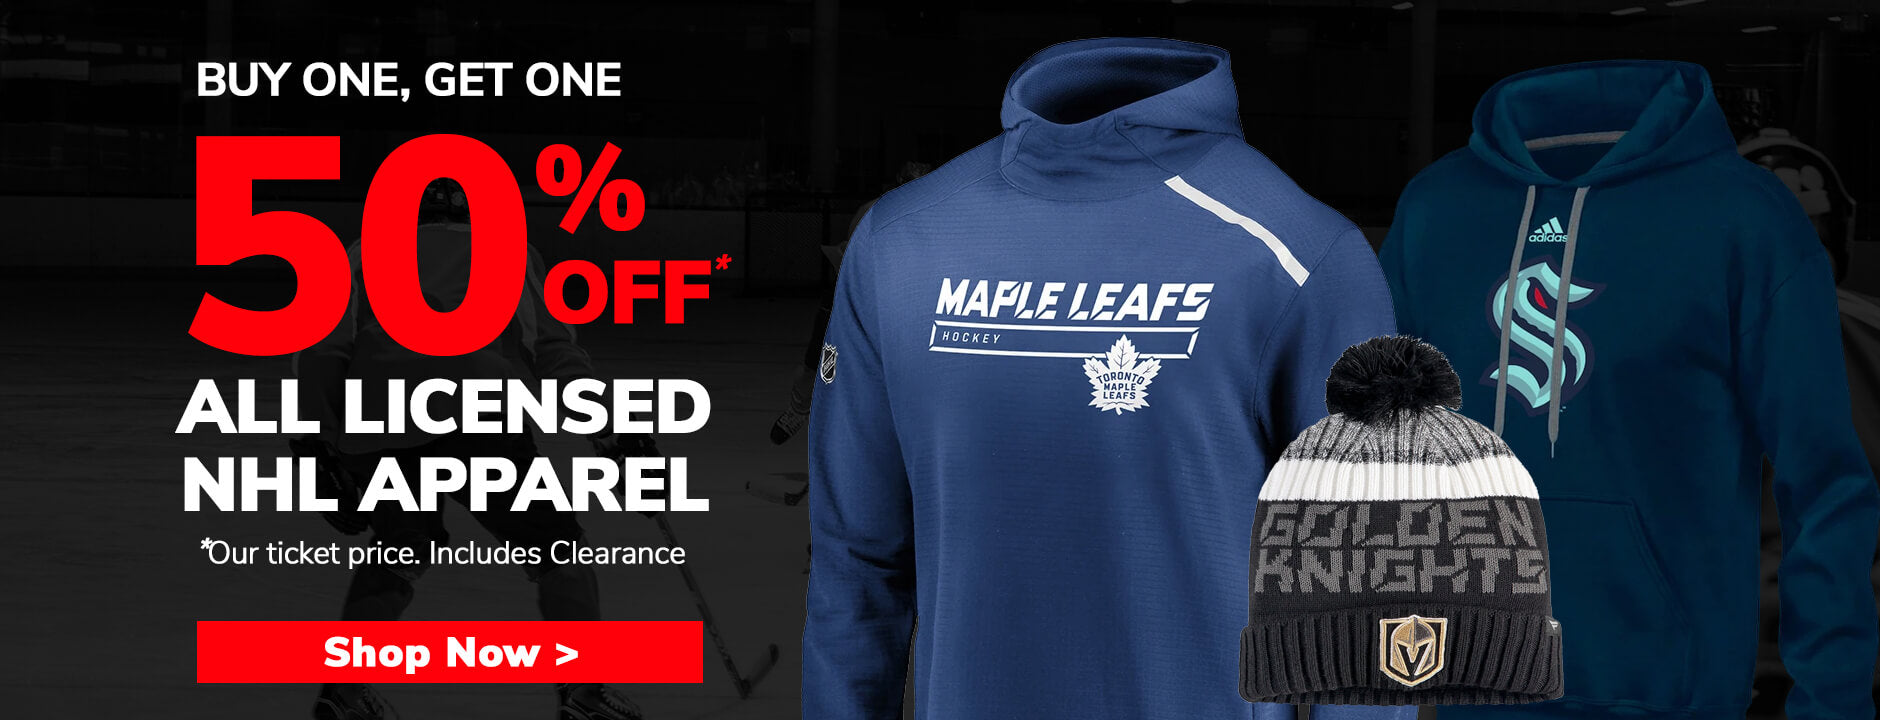 Buy One Get One 50% OFF NHL Apparel